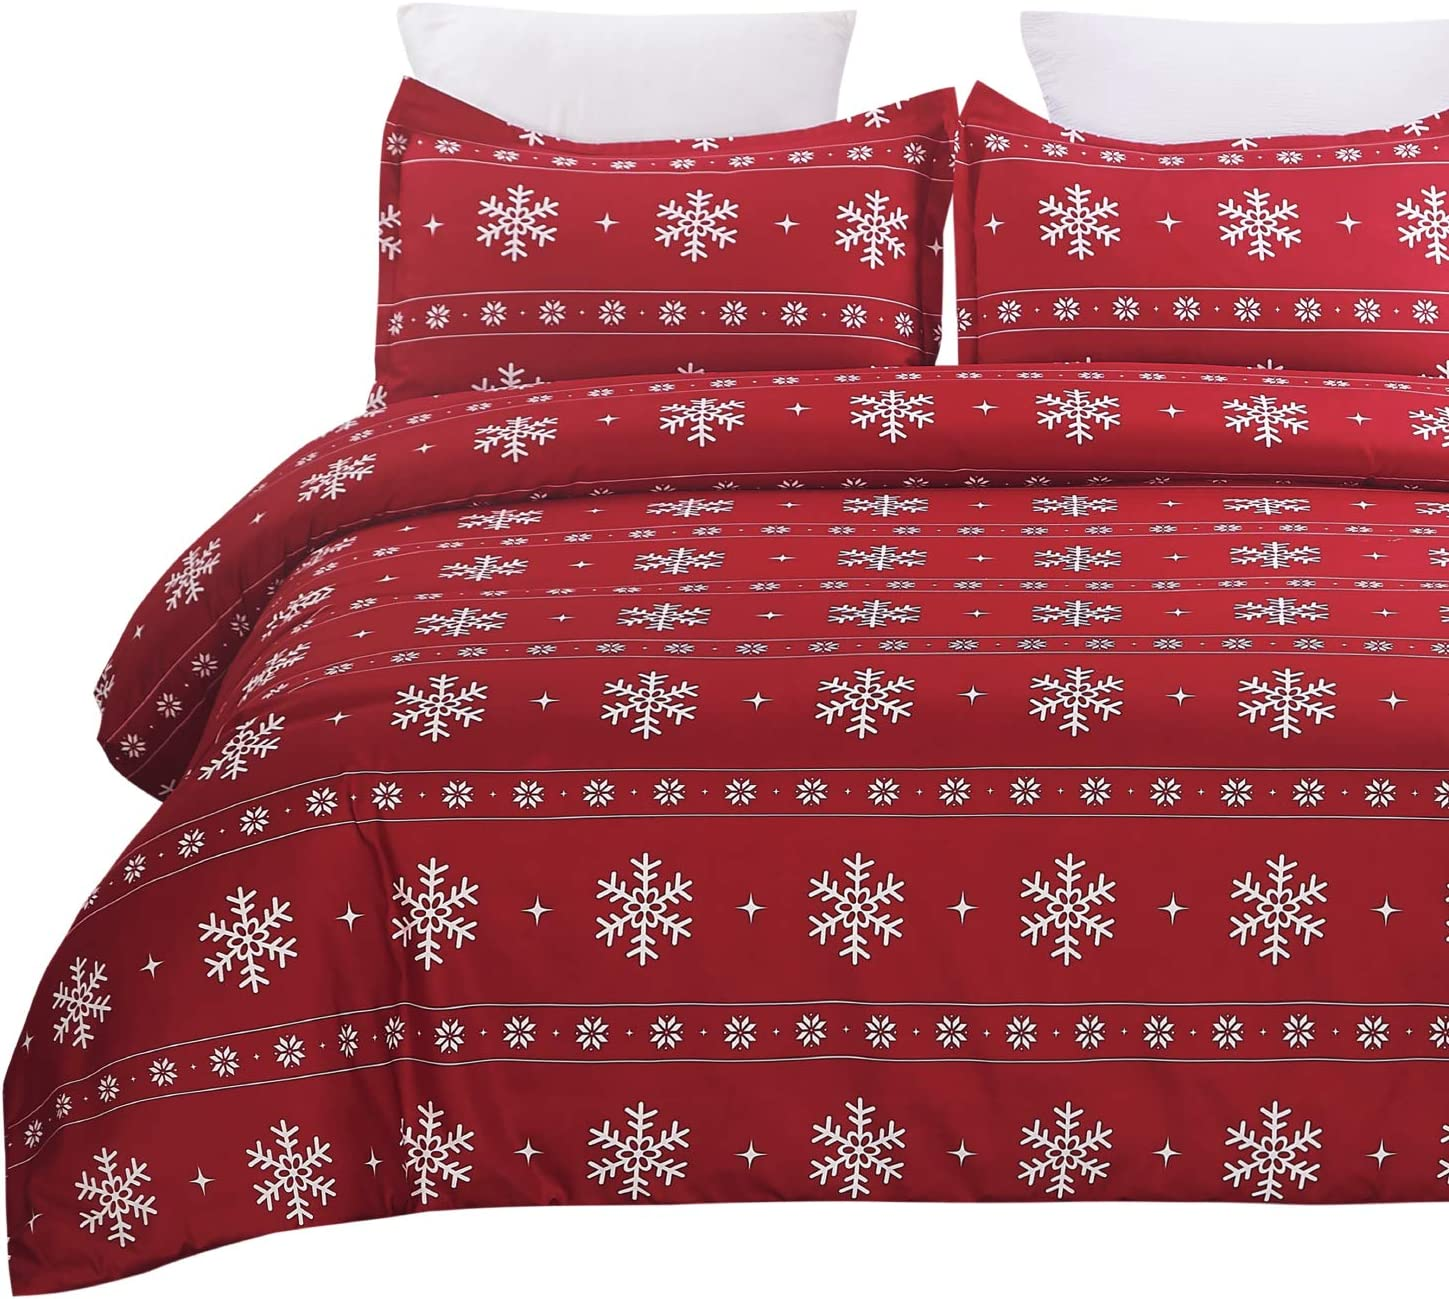 Vaulia Lightweight Microfiber Duvet Cover Set, Snowflake Pattern Design for Christmas New Year Holidays, Red Color - Queen Size : Home & Kitchen